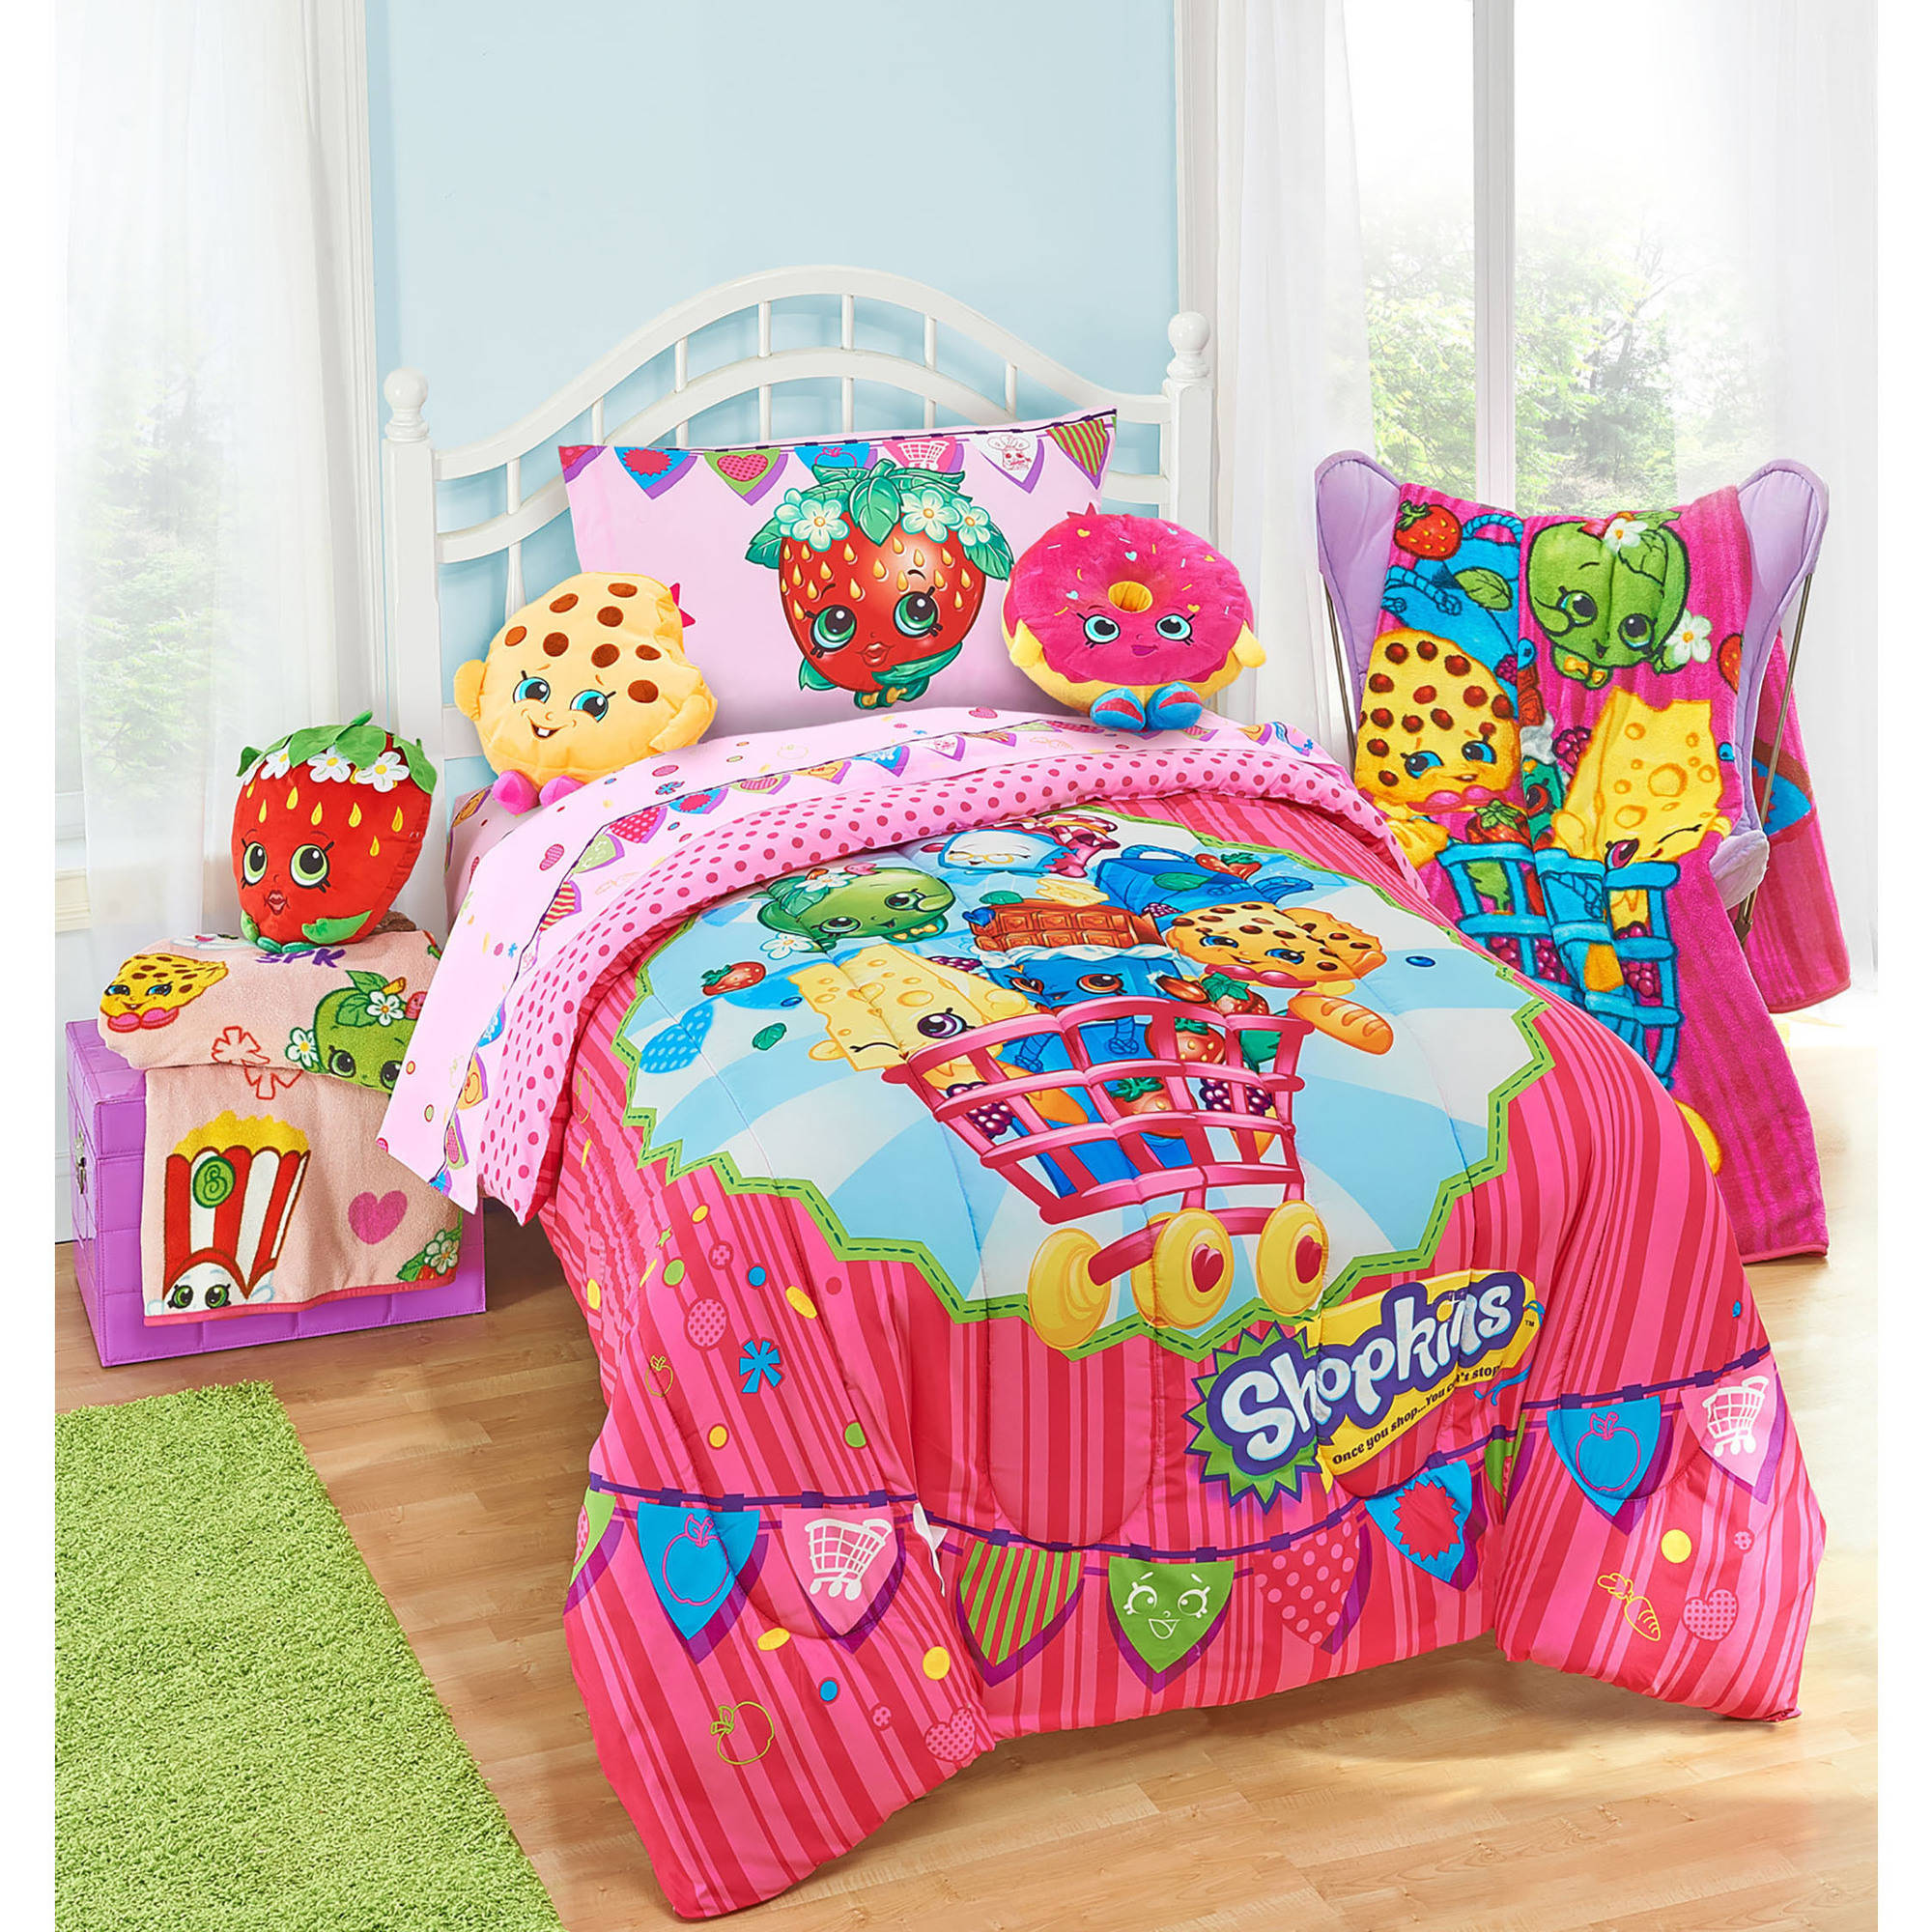 Bedding sets for teenage girls walmart - Bedding Sets For Teenage Girls Walmart 35